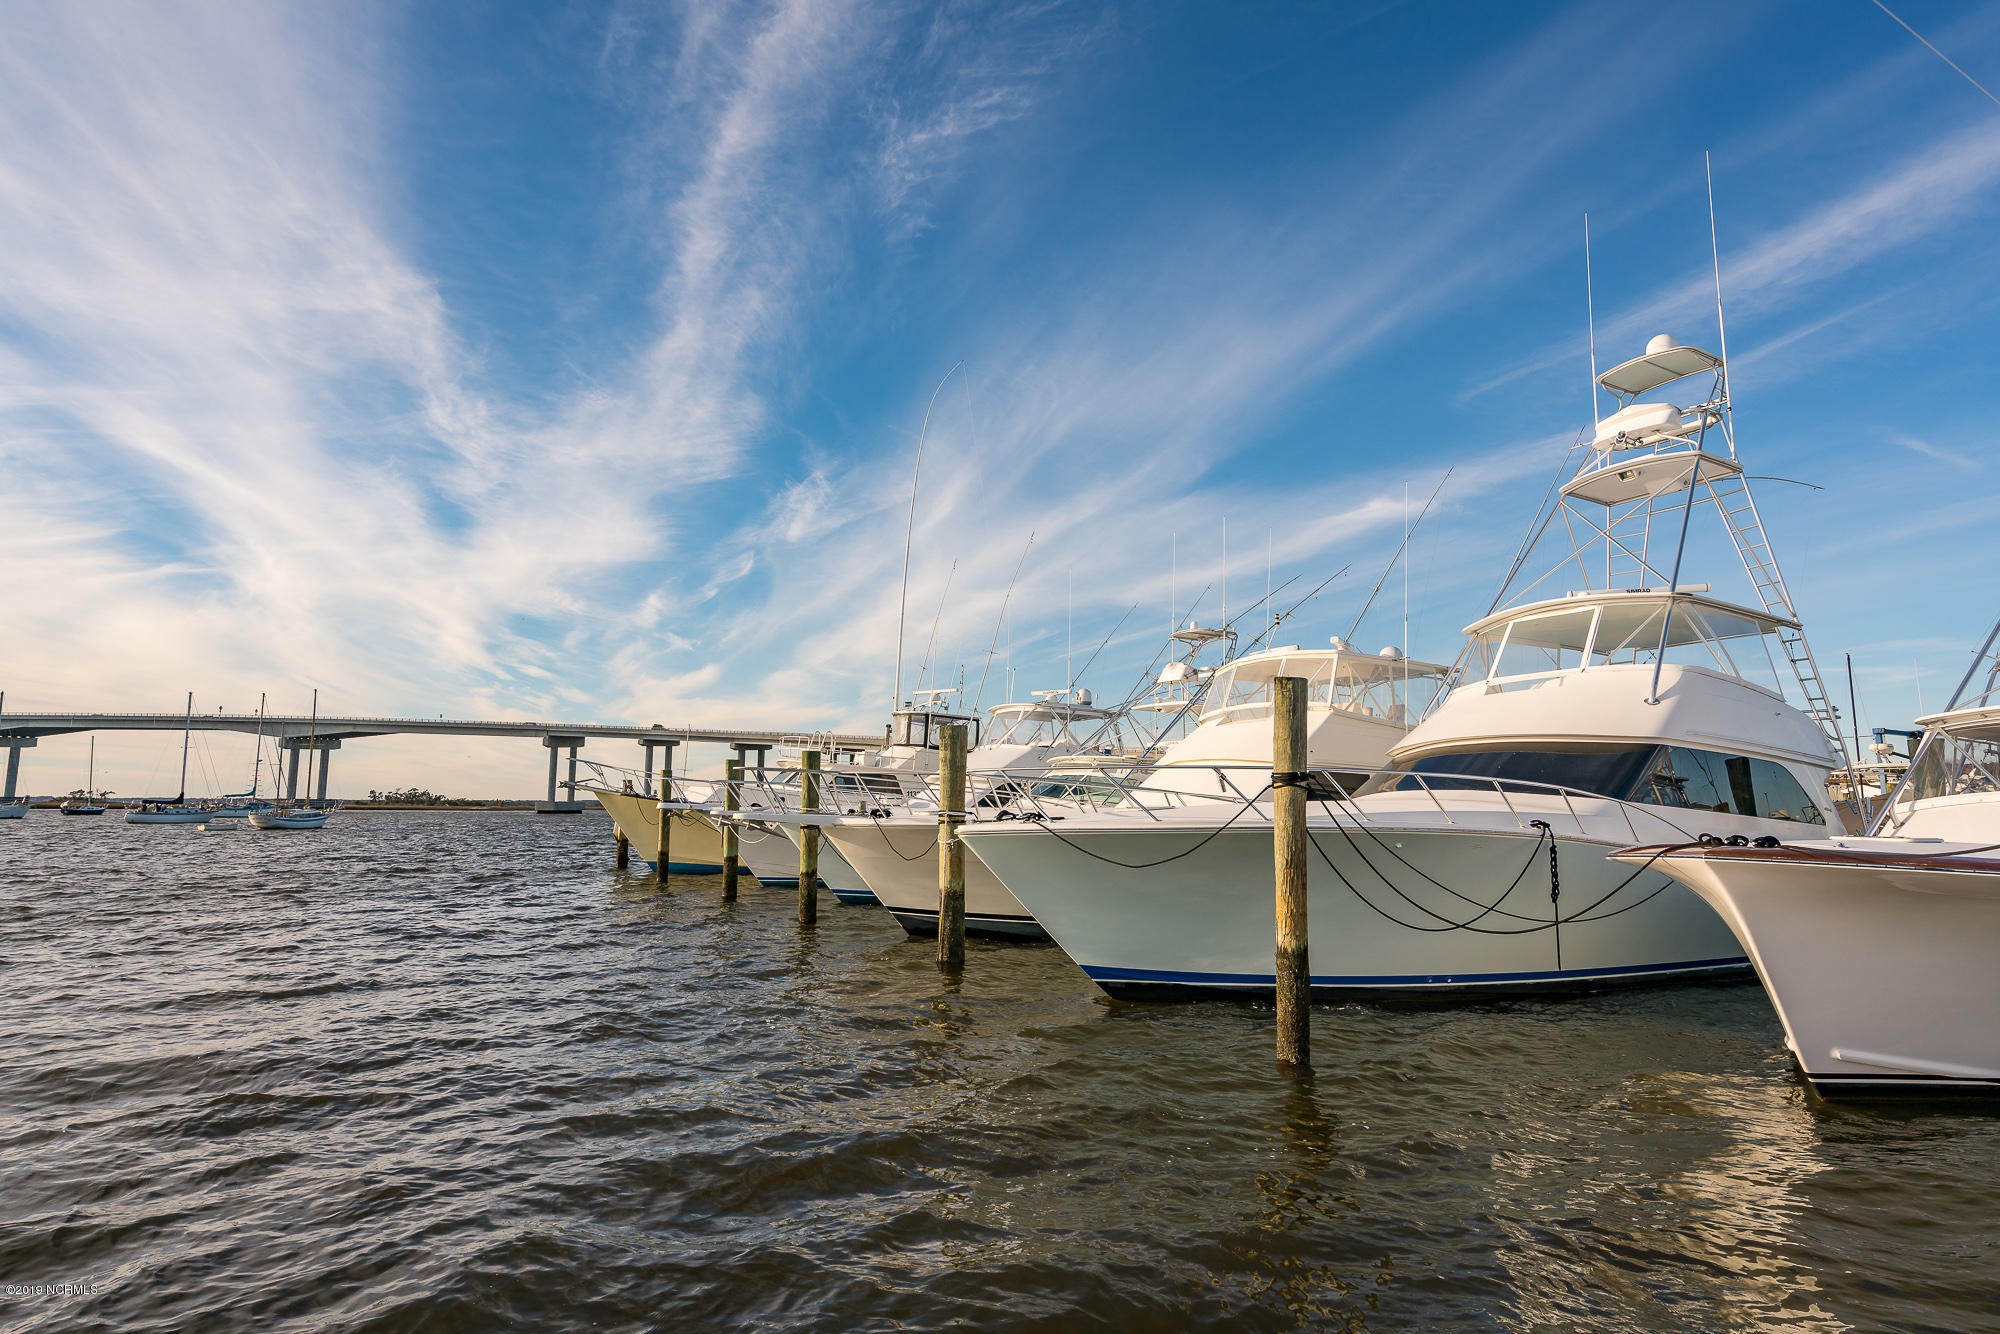 114 Town Creek Drive, Beaufort, North Carolina 28516, ,Wet,For sale,Town Creek,100153428